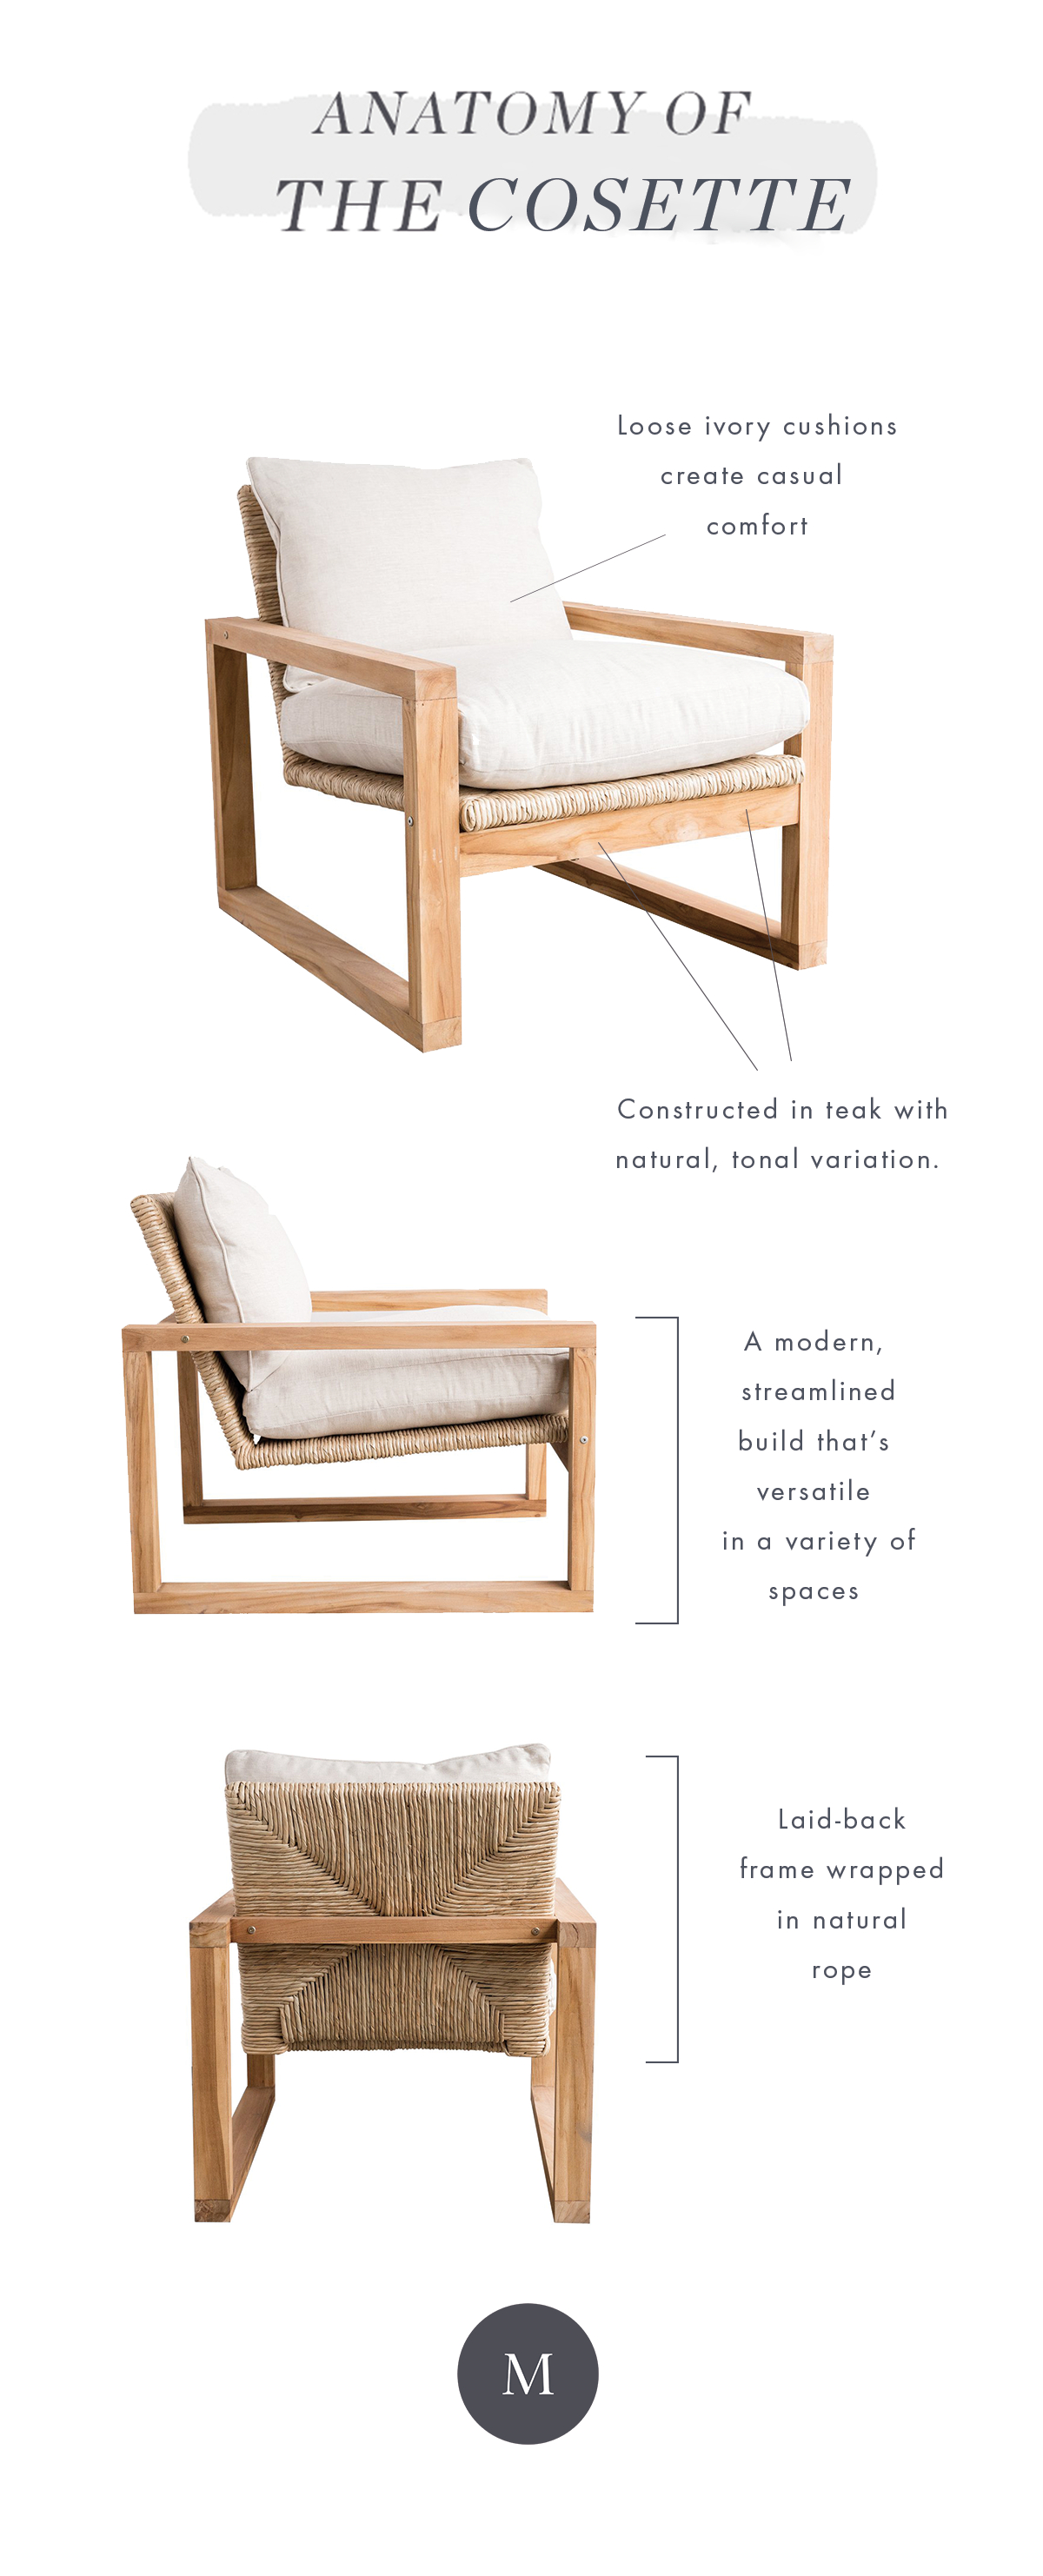 Meet The Cosette Chair In 2018 | Studio Mcgee Blog | Pinterest In Cosette Leather Sofa Chairs (Image 22 of 25)